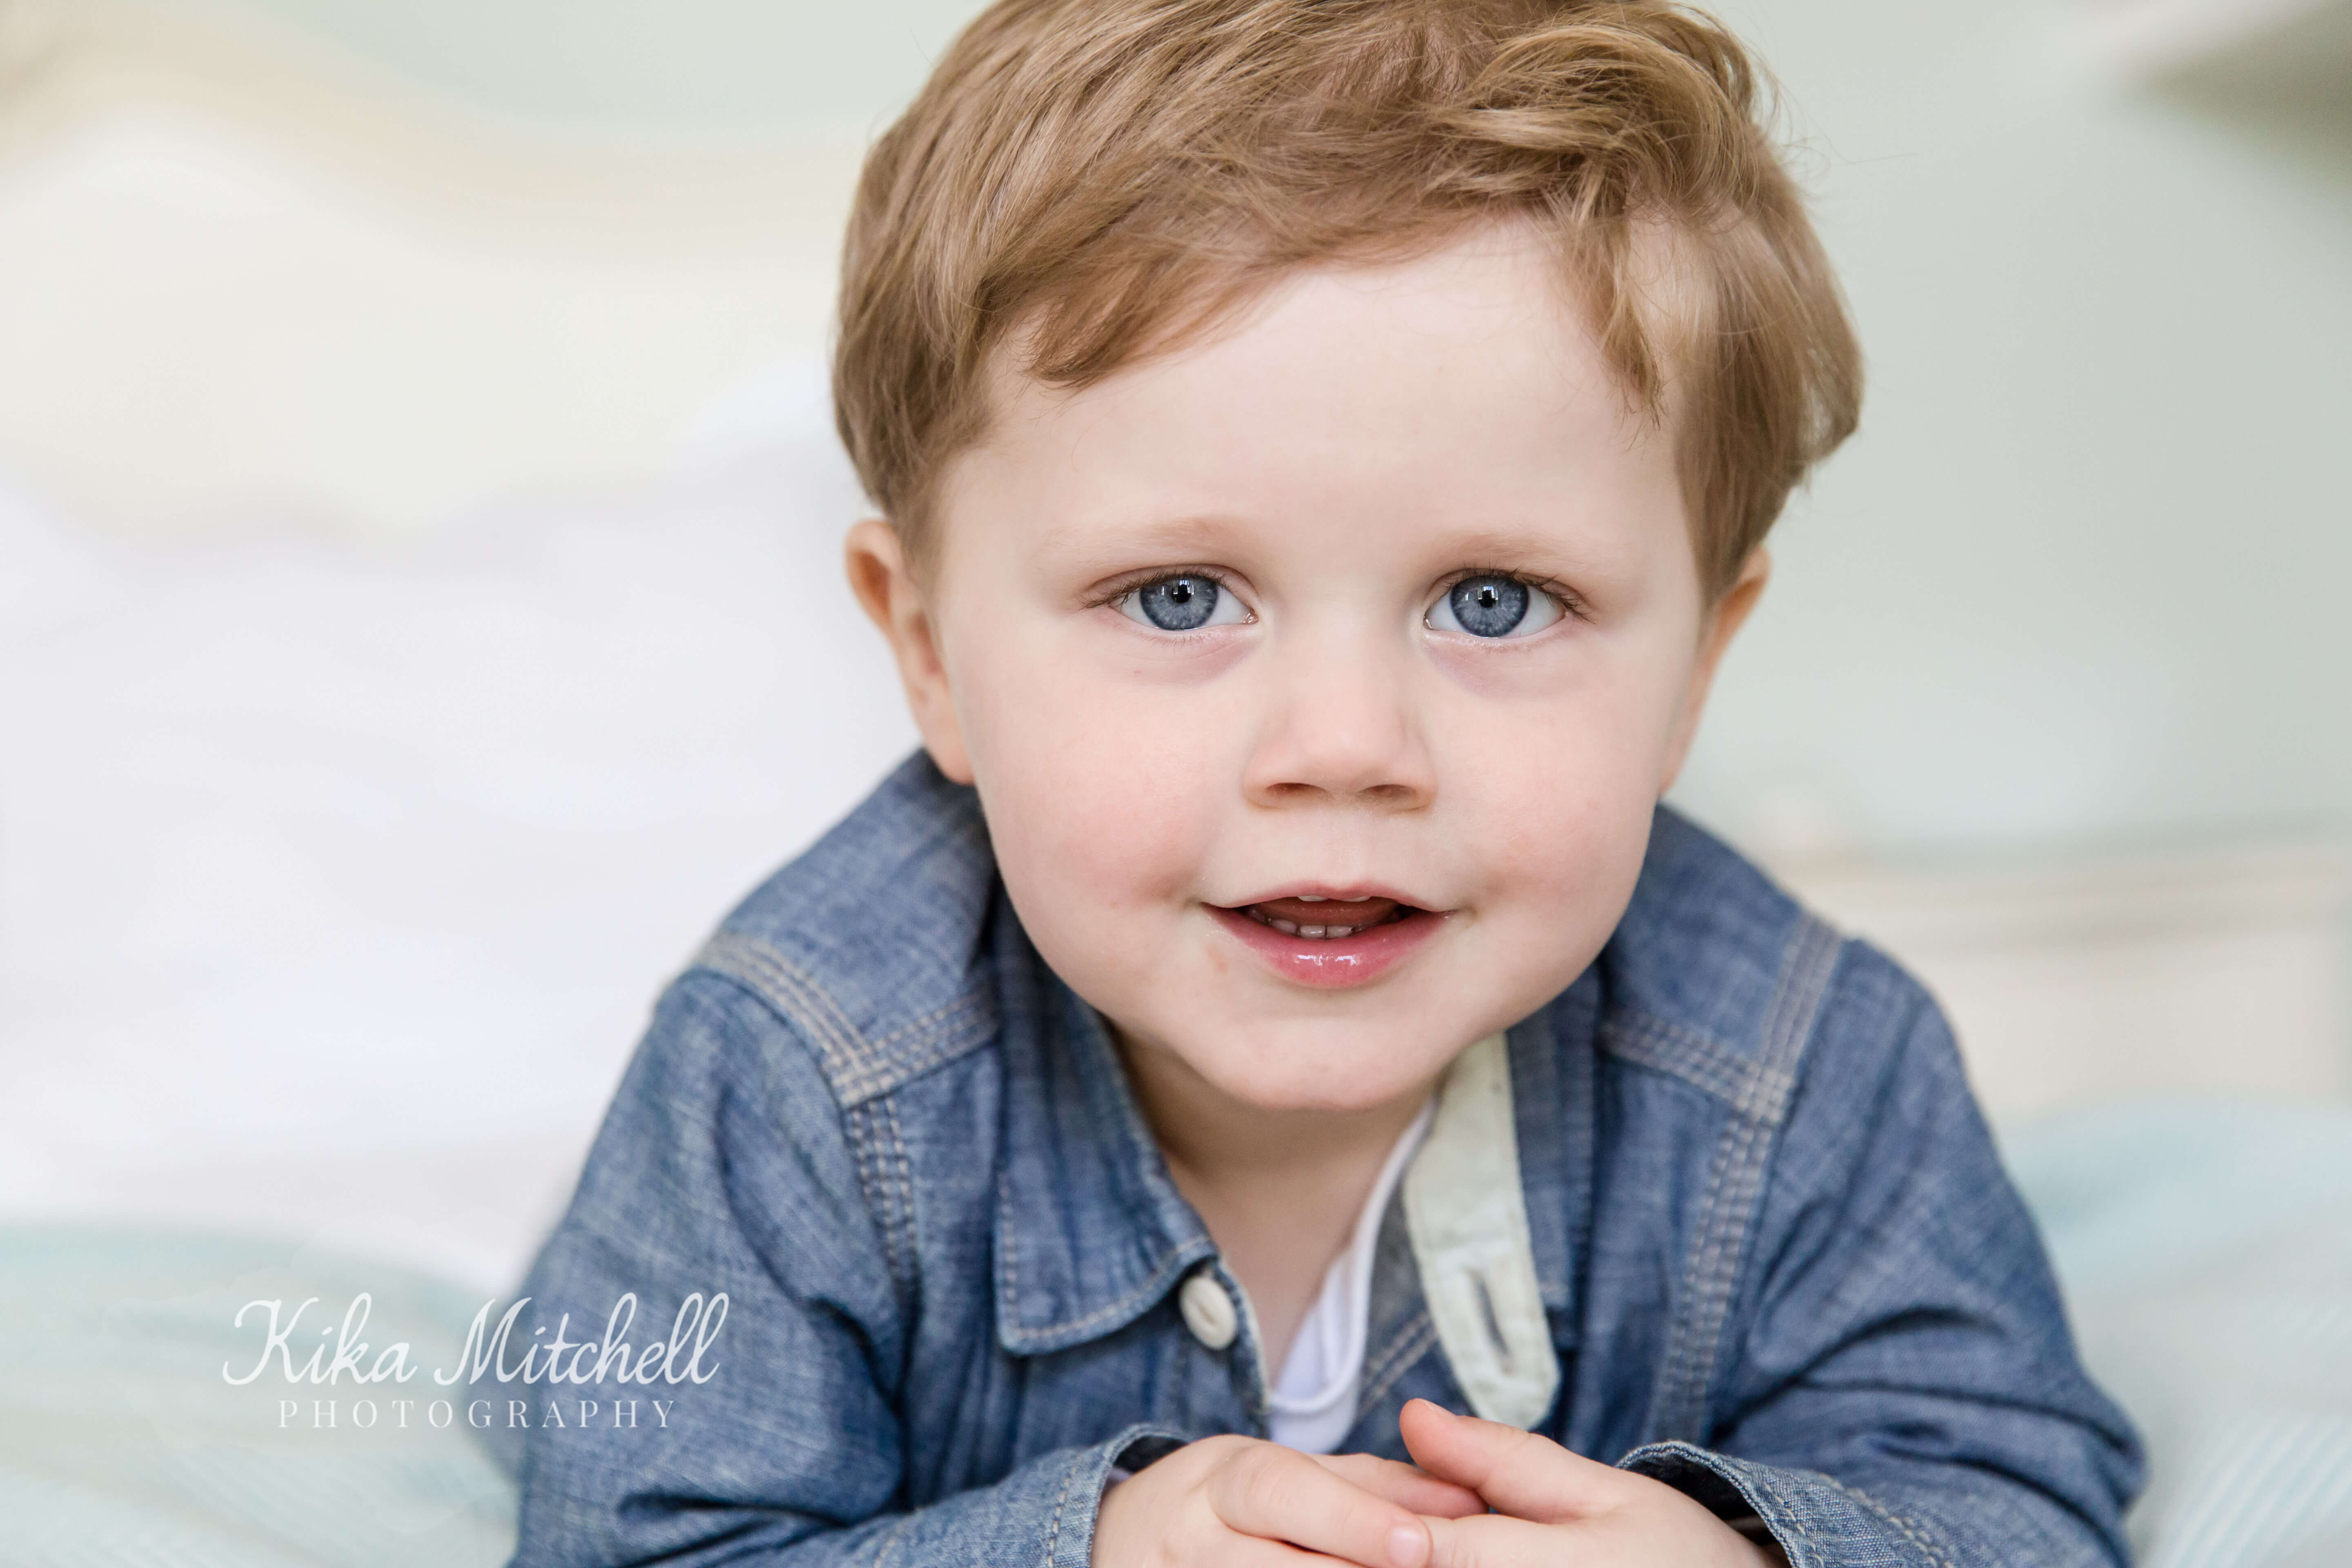 CHILD PORTRAITS BY CHELMSFORD PHOTOGRAPHER KIKA MITCHELL